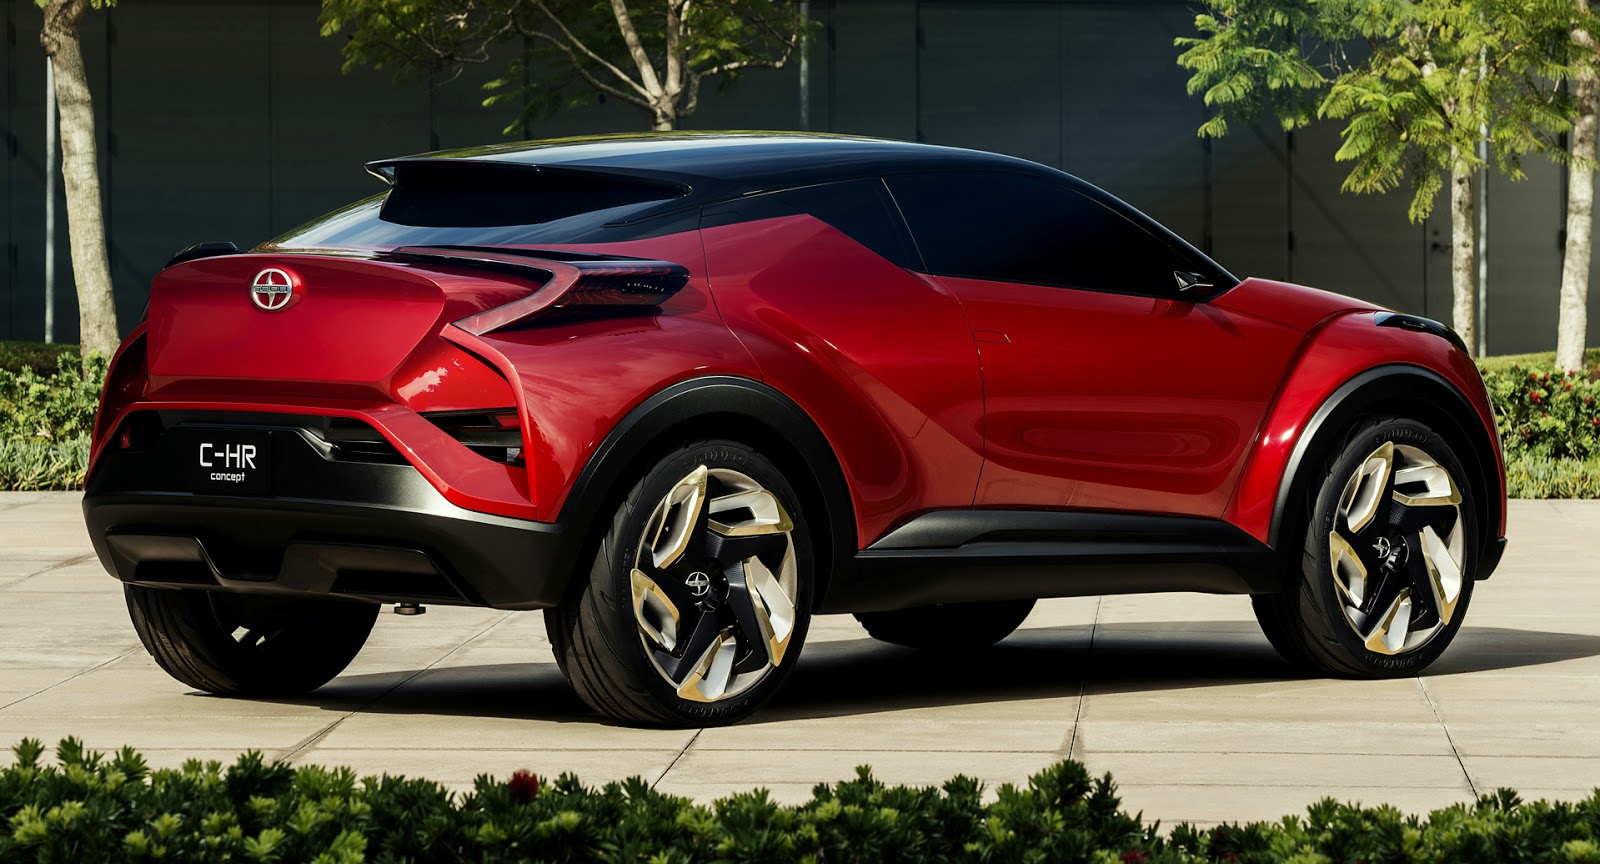 Scion c hr sport crossover concept debuts at the la auto show ahead of production w video